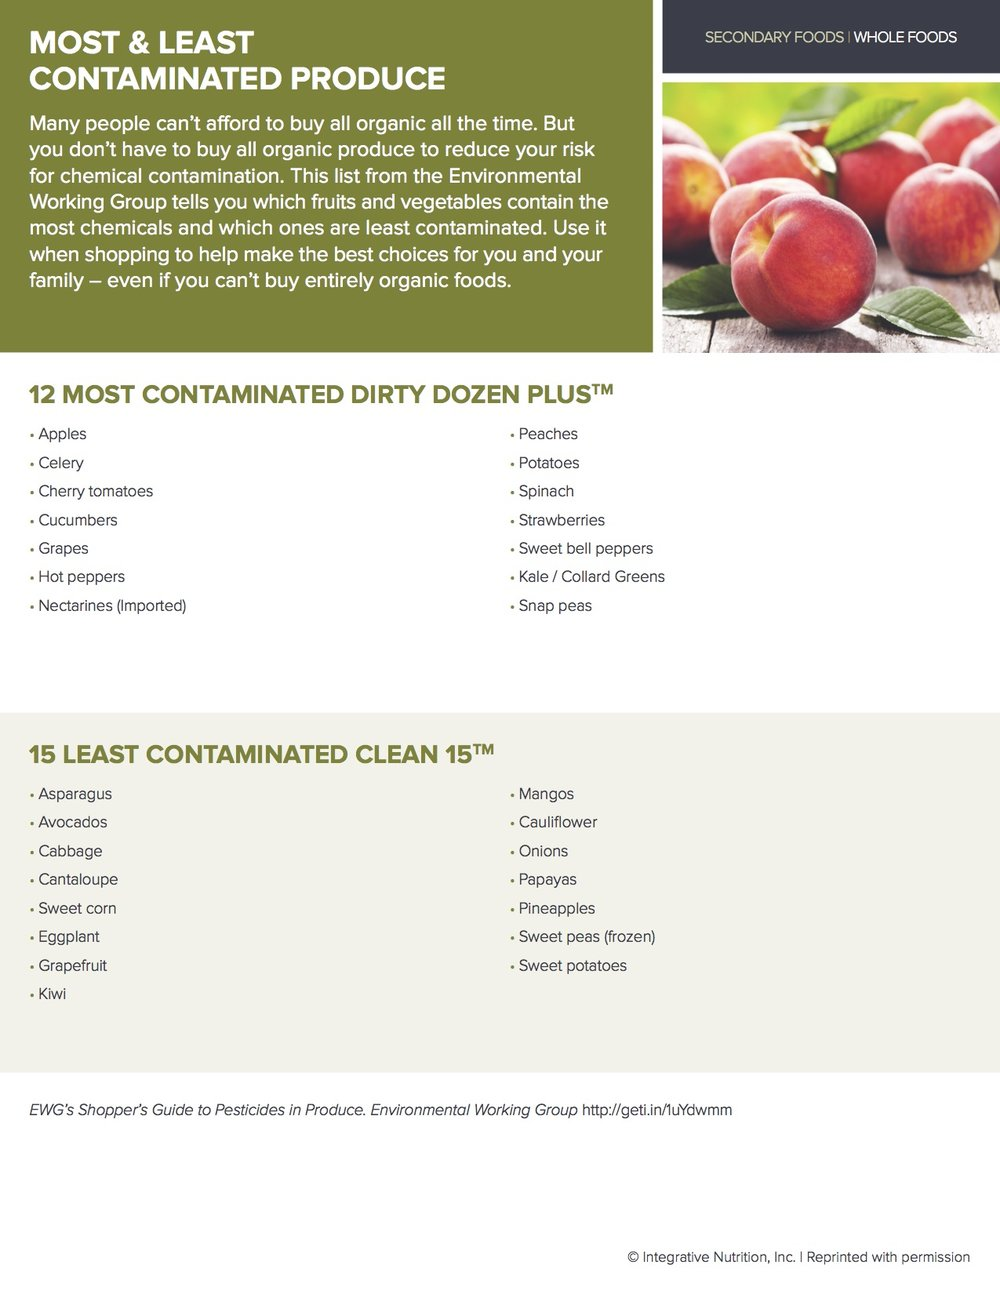 12_most_and_least_contaminated_produce+copy.jpg